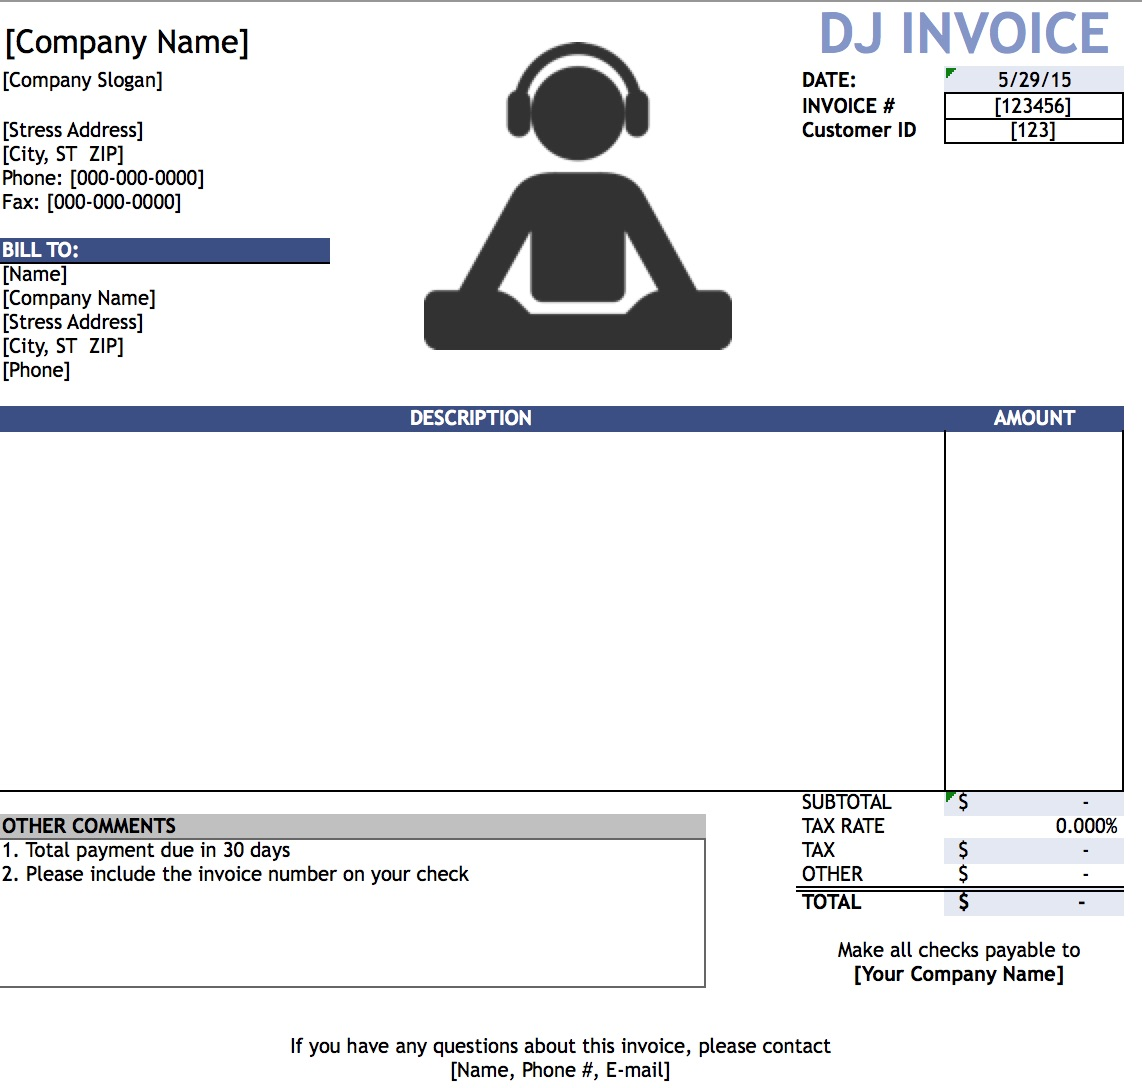 Free DJ Disc Jockey Invoice Template Excel PDF Word Doc - Free invoice template word document t mobile online store